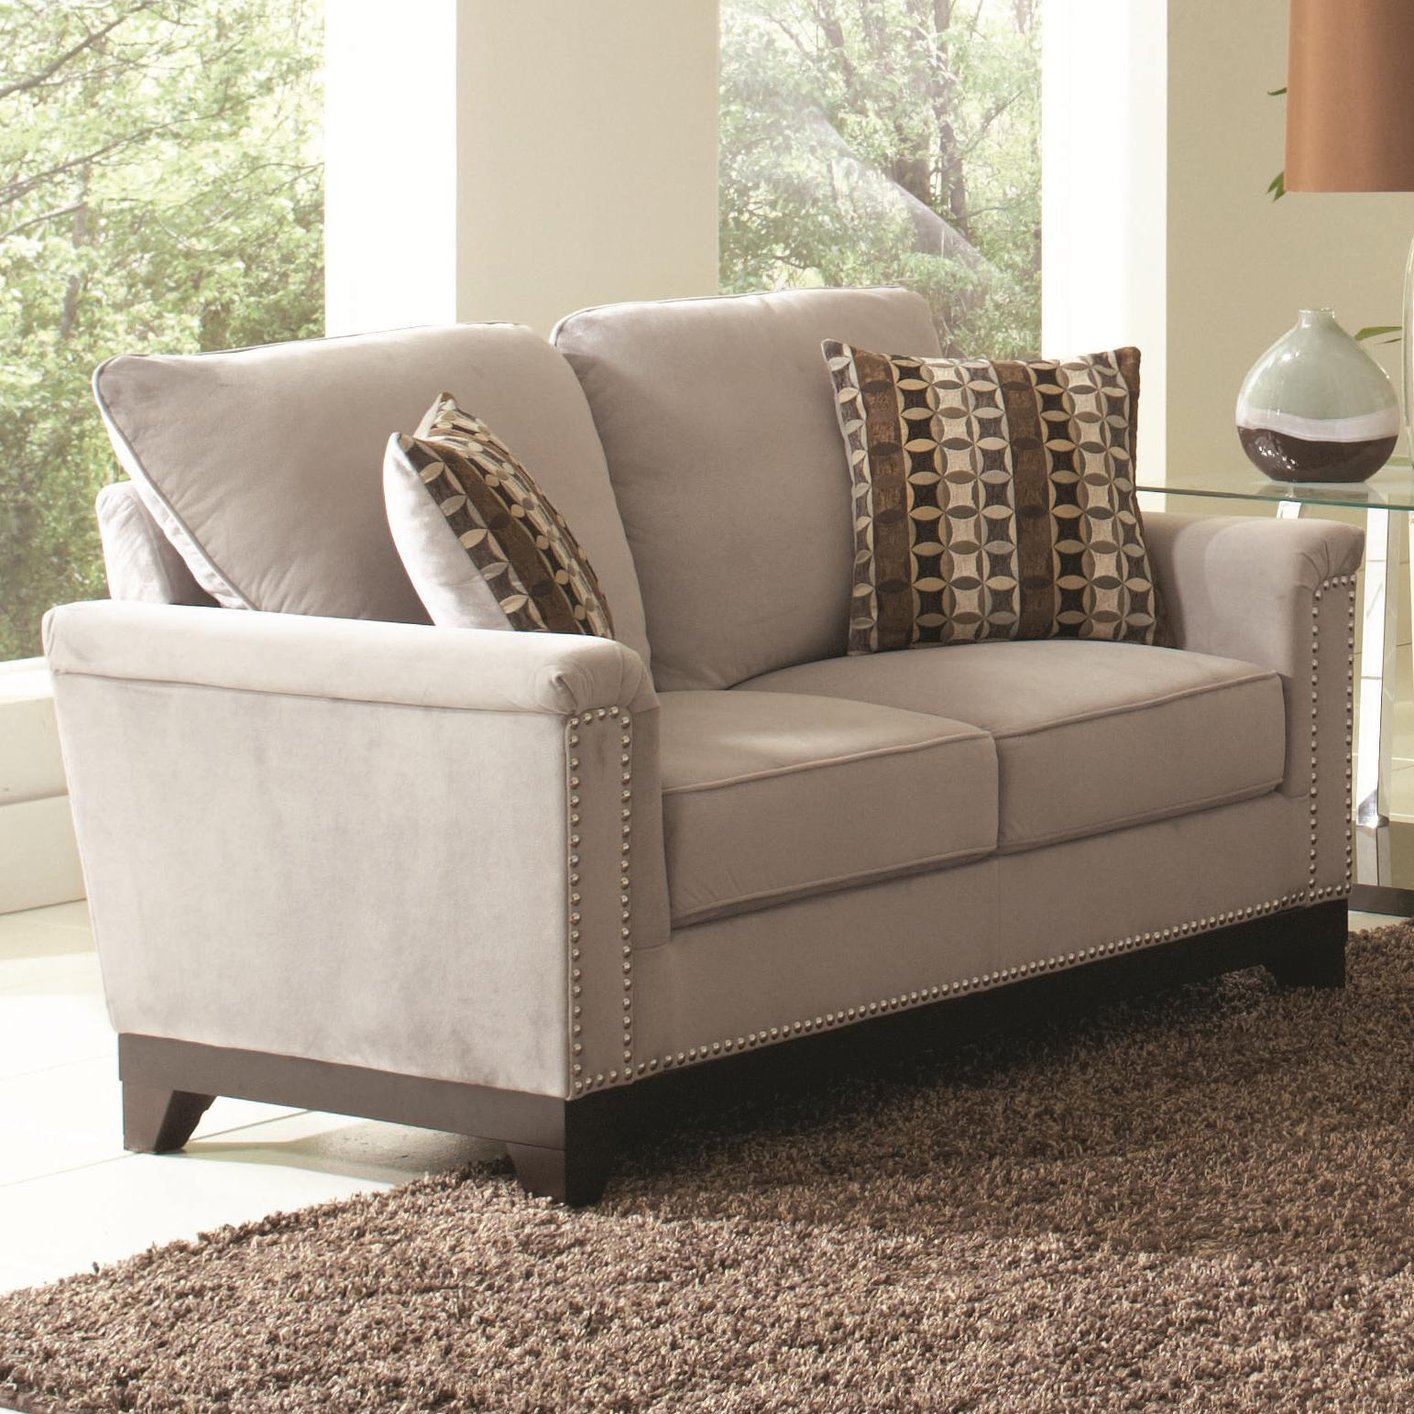 Coaster Mason 503602 Grey Fabric Loveseat Steal A Sofa Furniture Outlet Los Angeles Ca